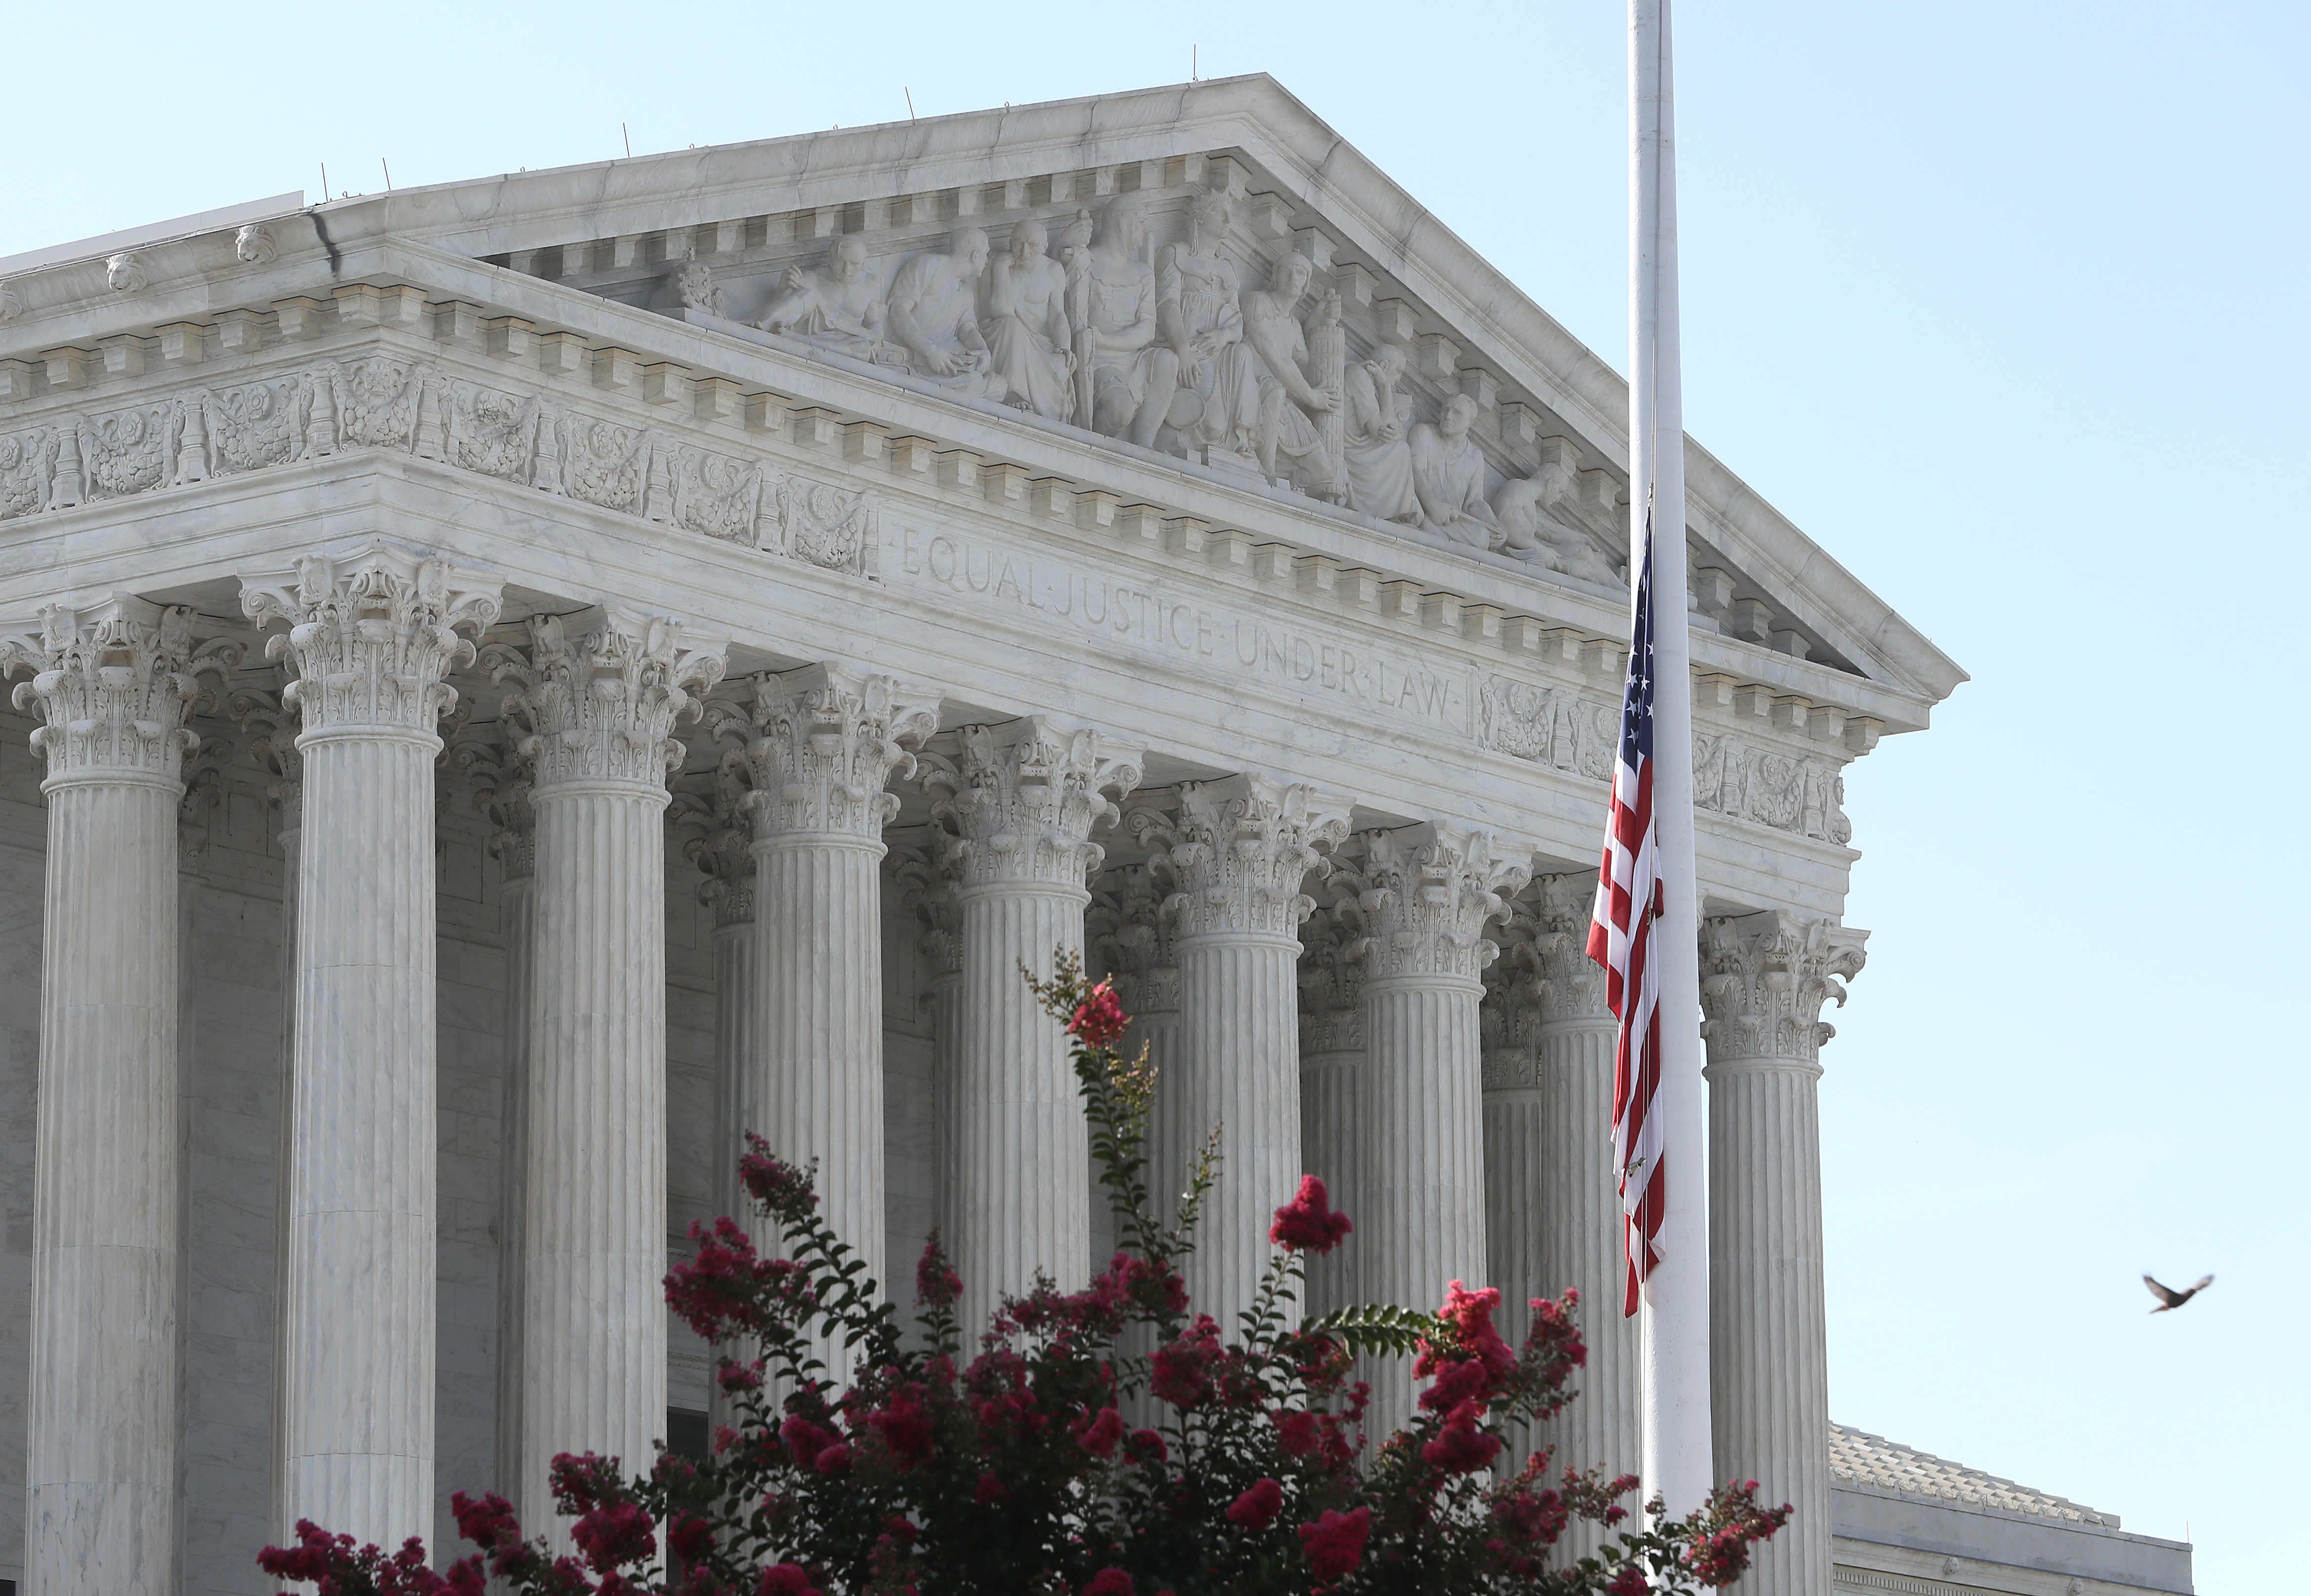 Flags fly at half-staff in front of the Supreme Court to honor Justice John Paul Stevens, who died on July 17, 2019. (Mark Wilson/Getty Images)